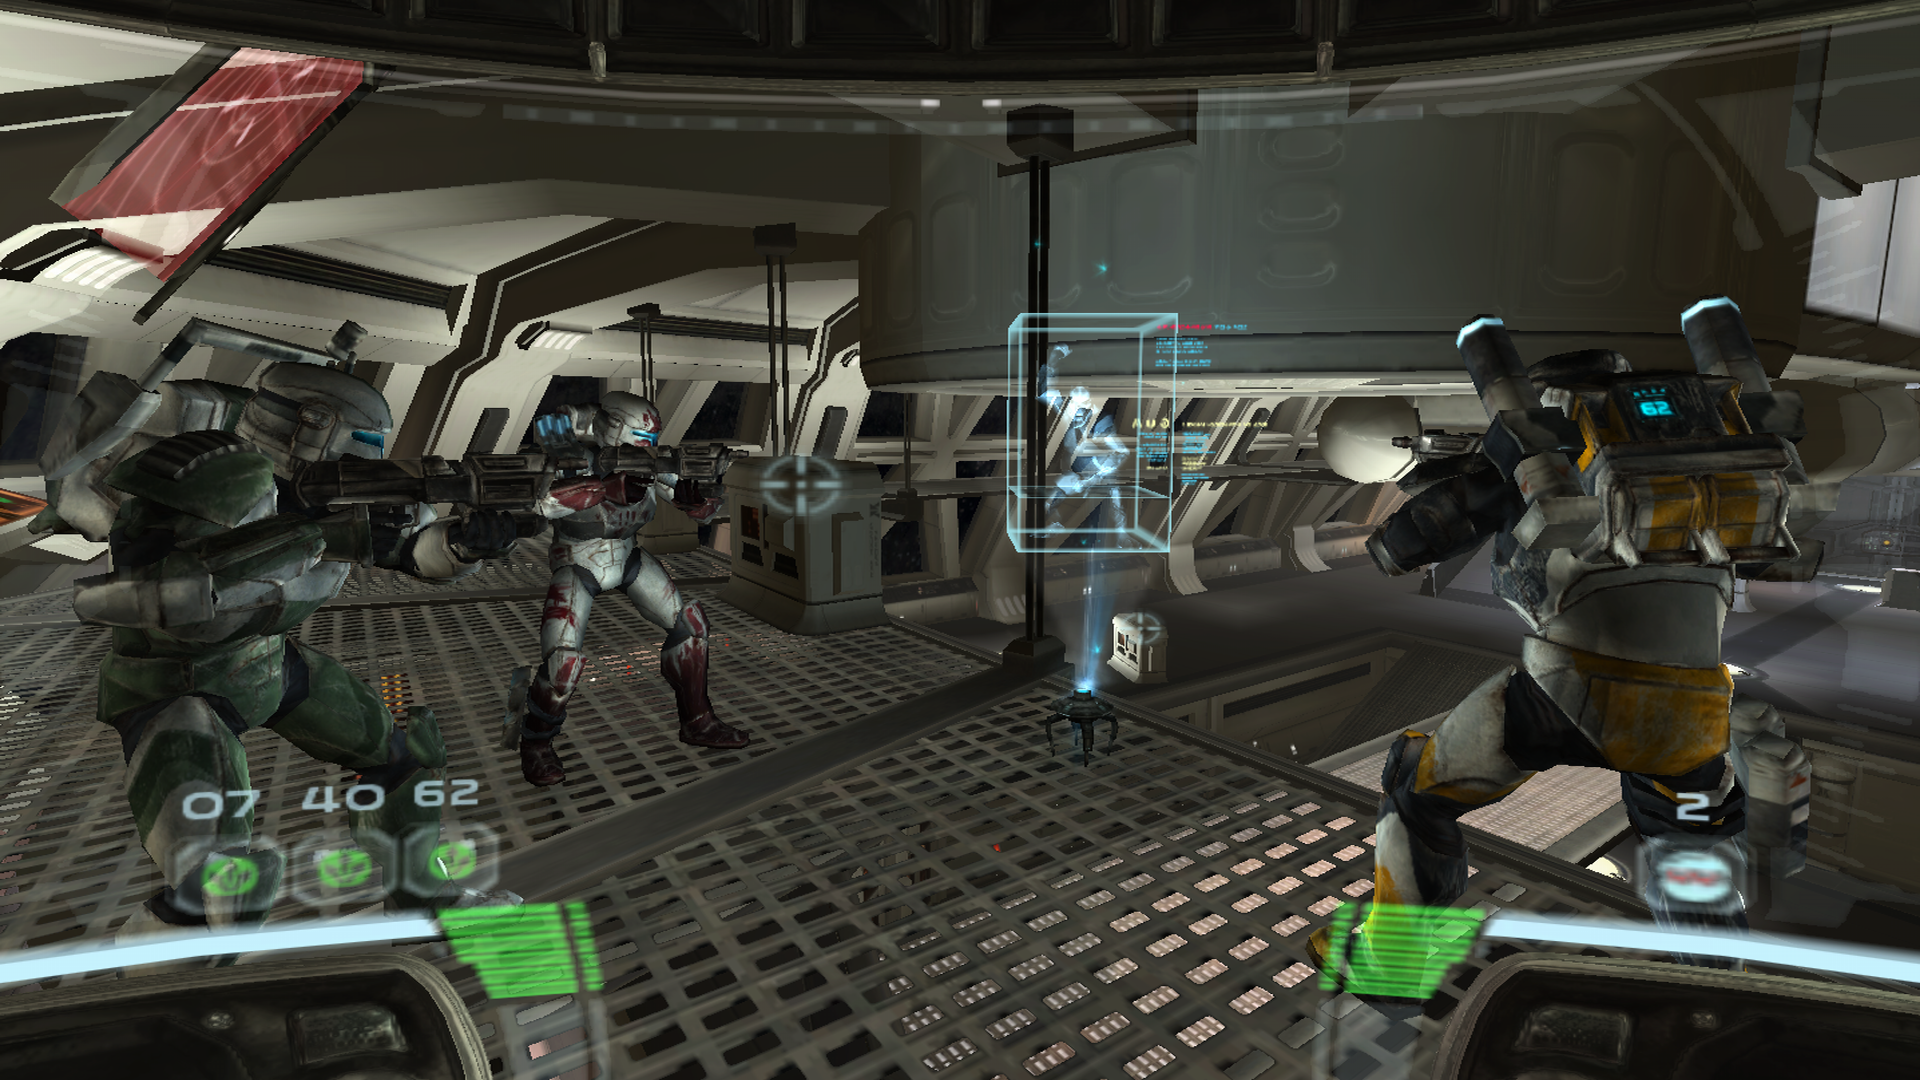 Star Wars Republic Commando's simplicity is what we need in